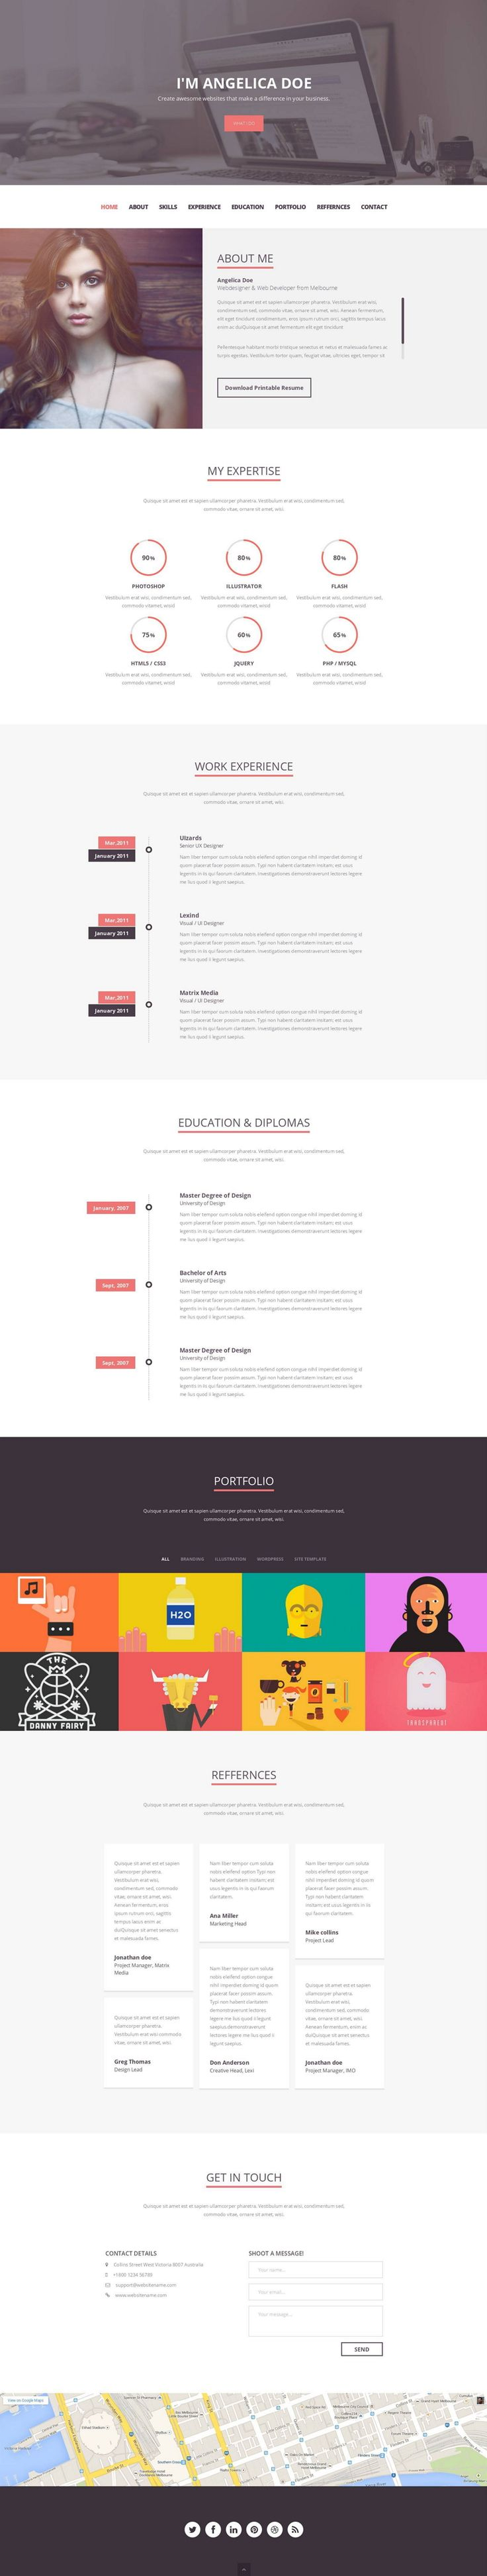 folix is a clean modern flat professional multipurpose online resume